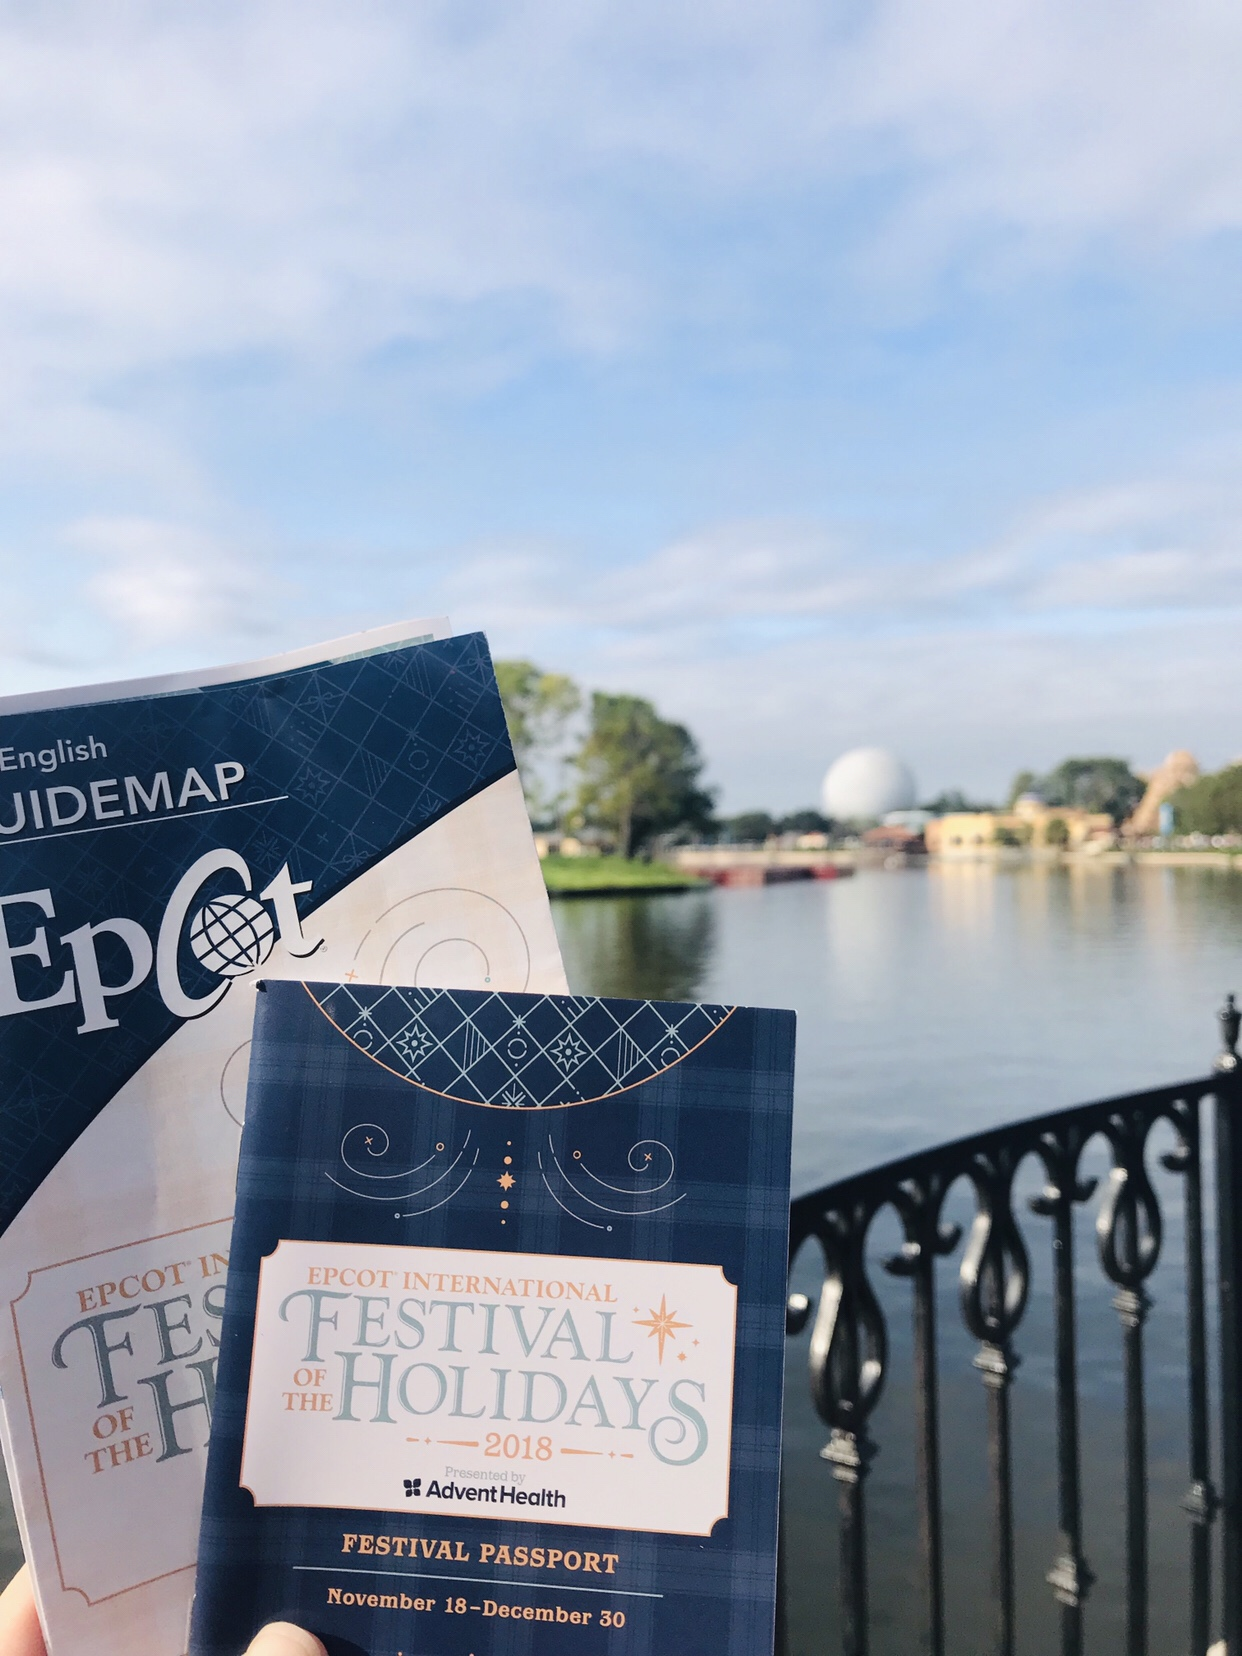 Epcot Festival of the Holidays Festival Passport and Times Guide